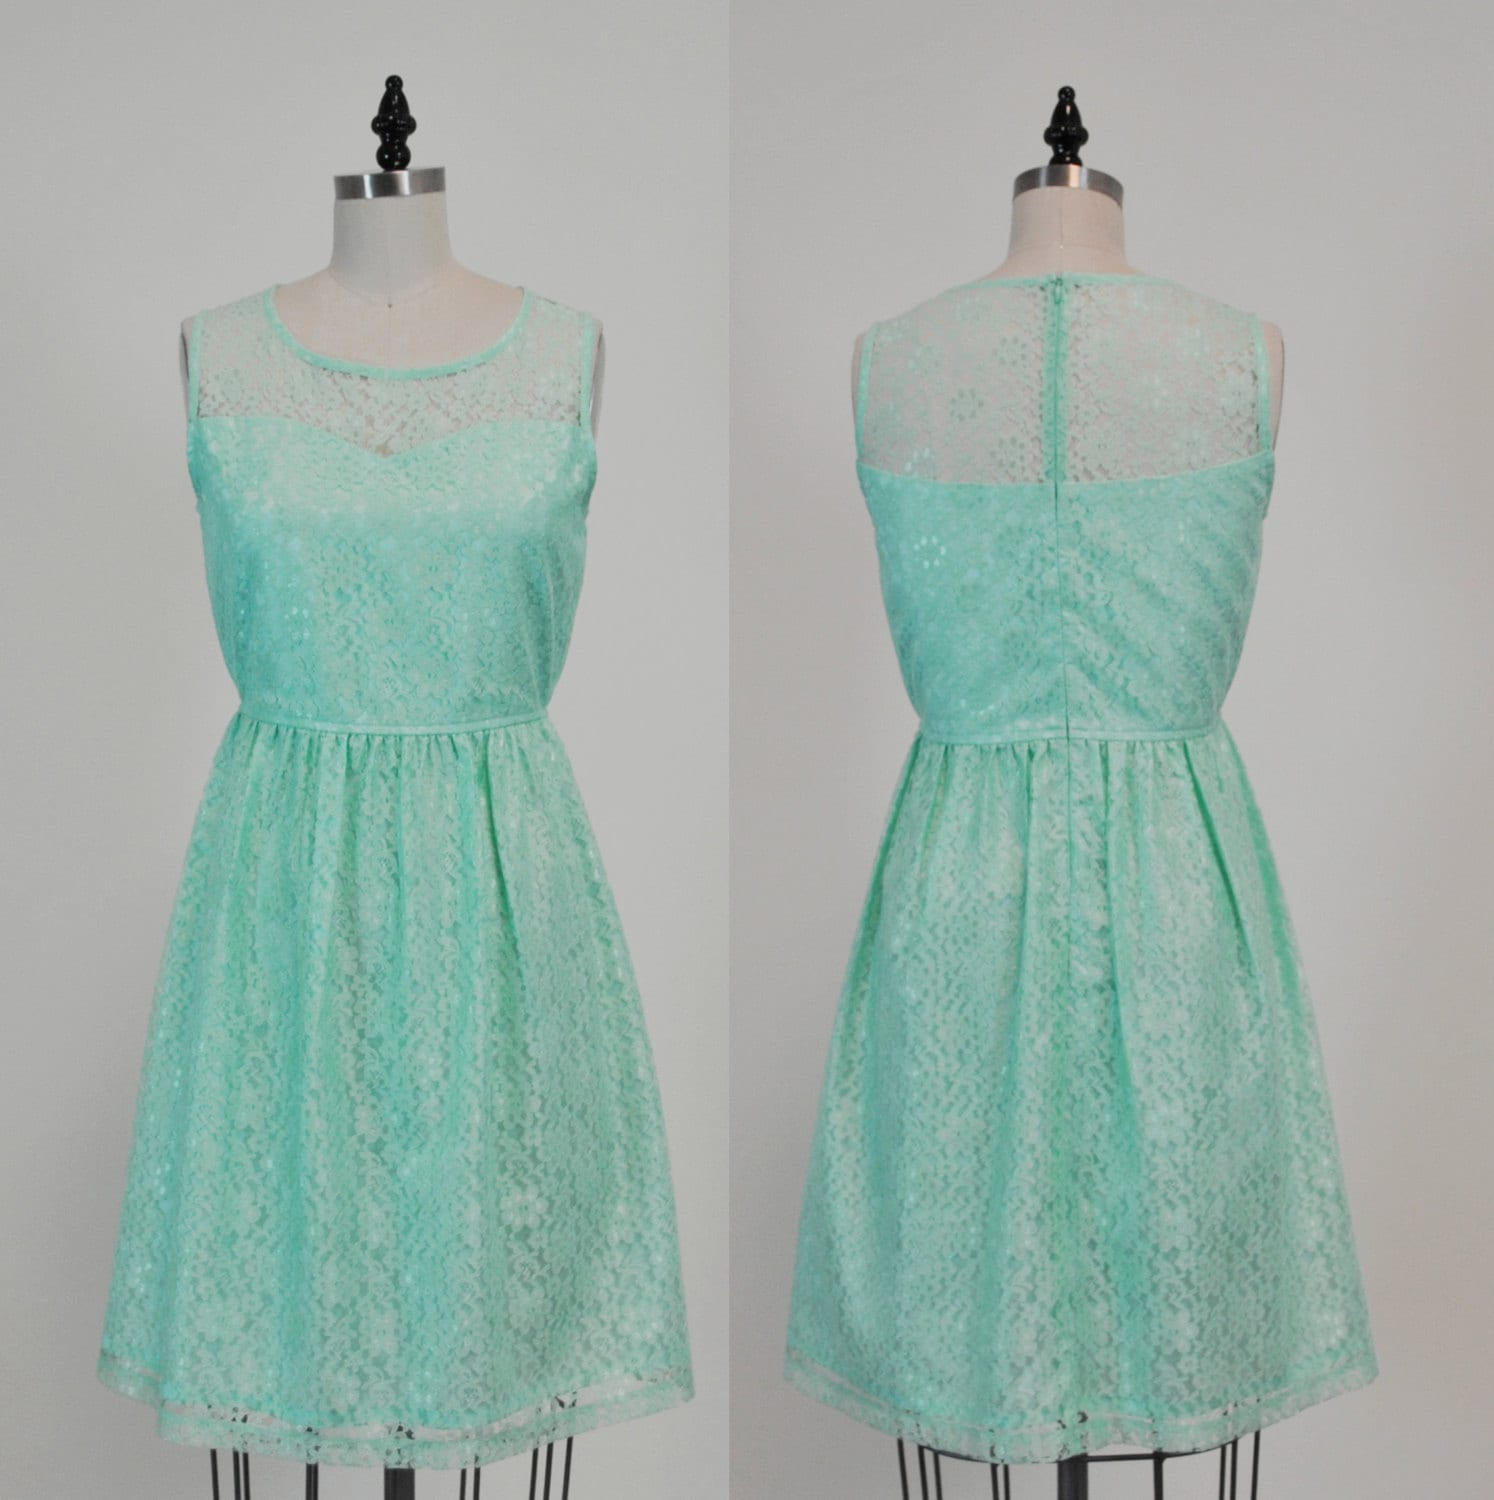 PROVENCE Mint : Seafoam Mint lace dress sweetheart